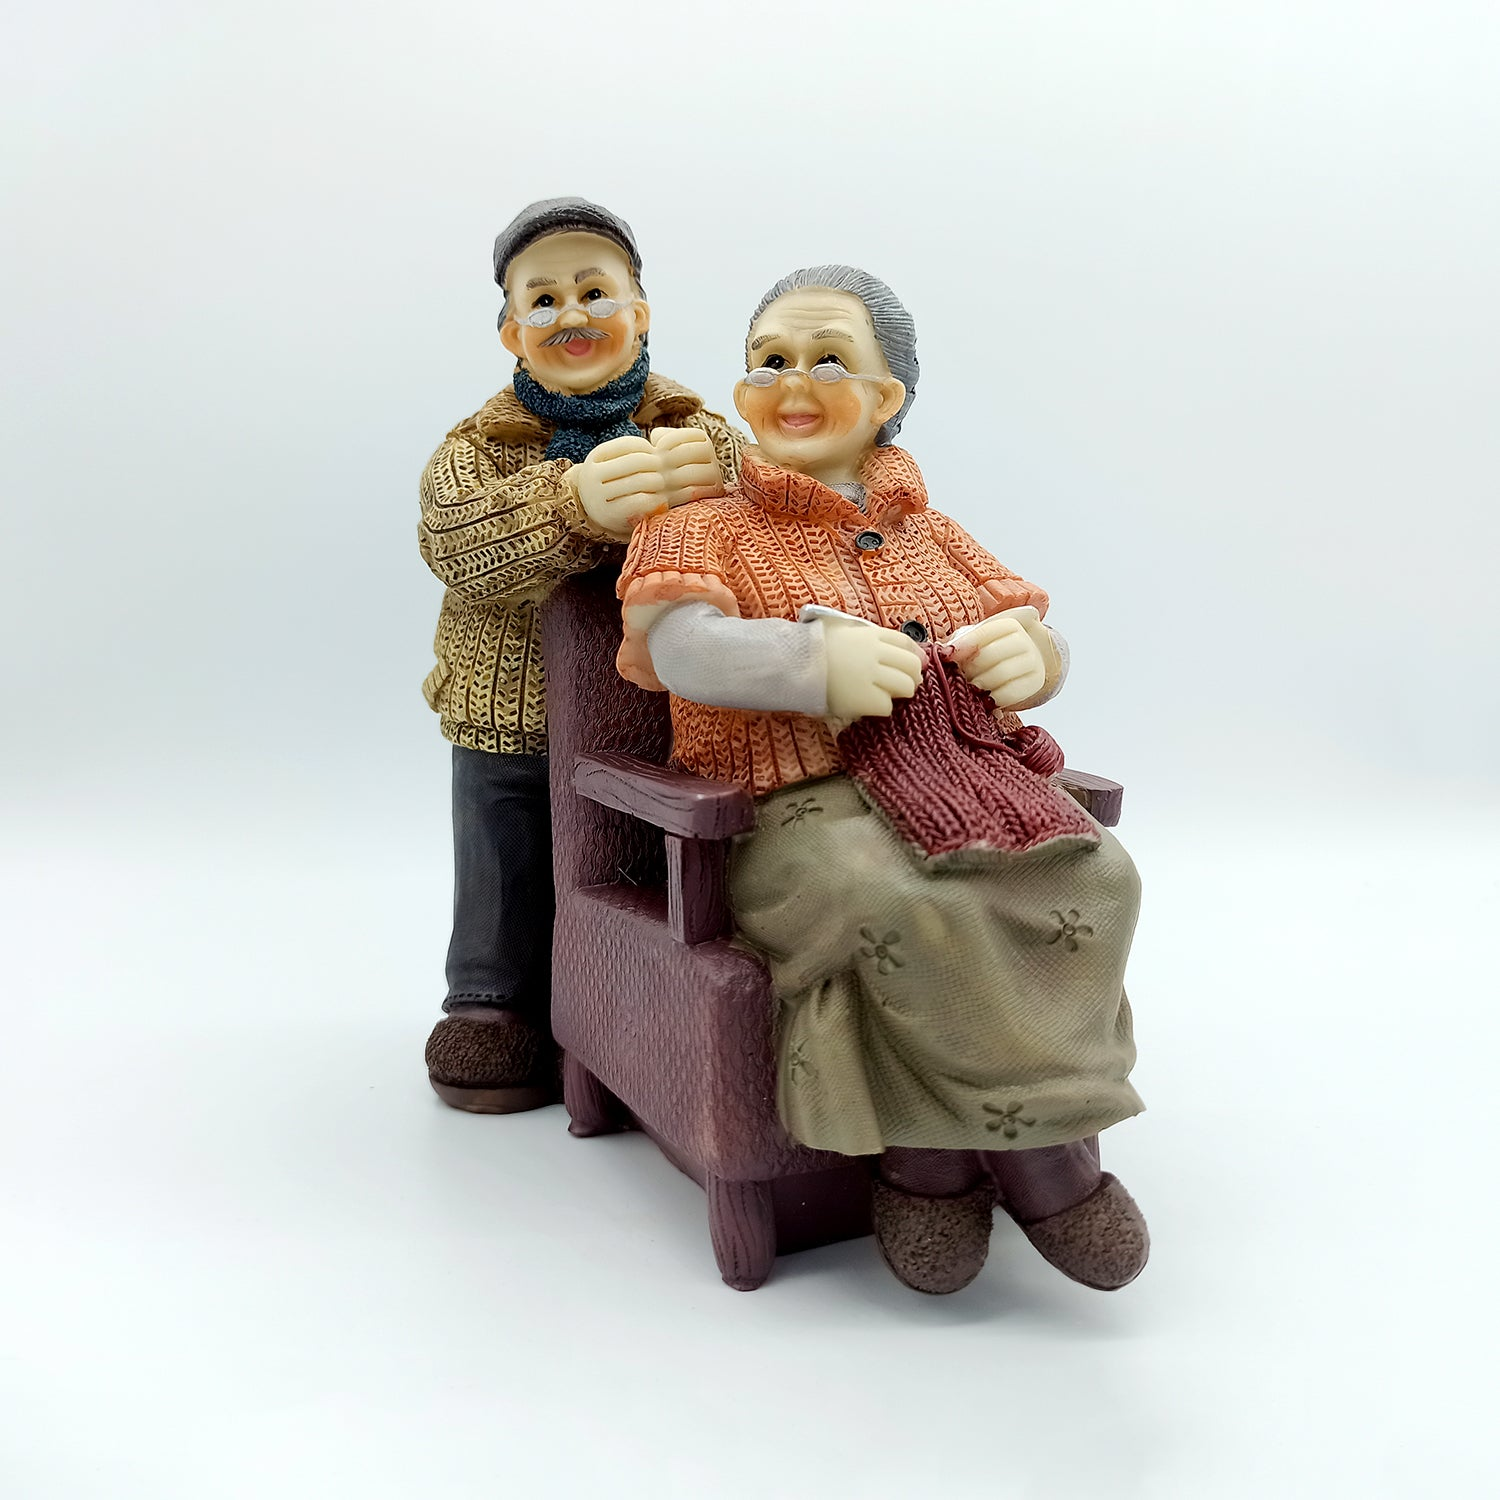 Copy of Cute Grandparents Together - Lovely Couple Figurine Gift for Old Couple